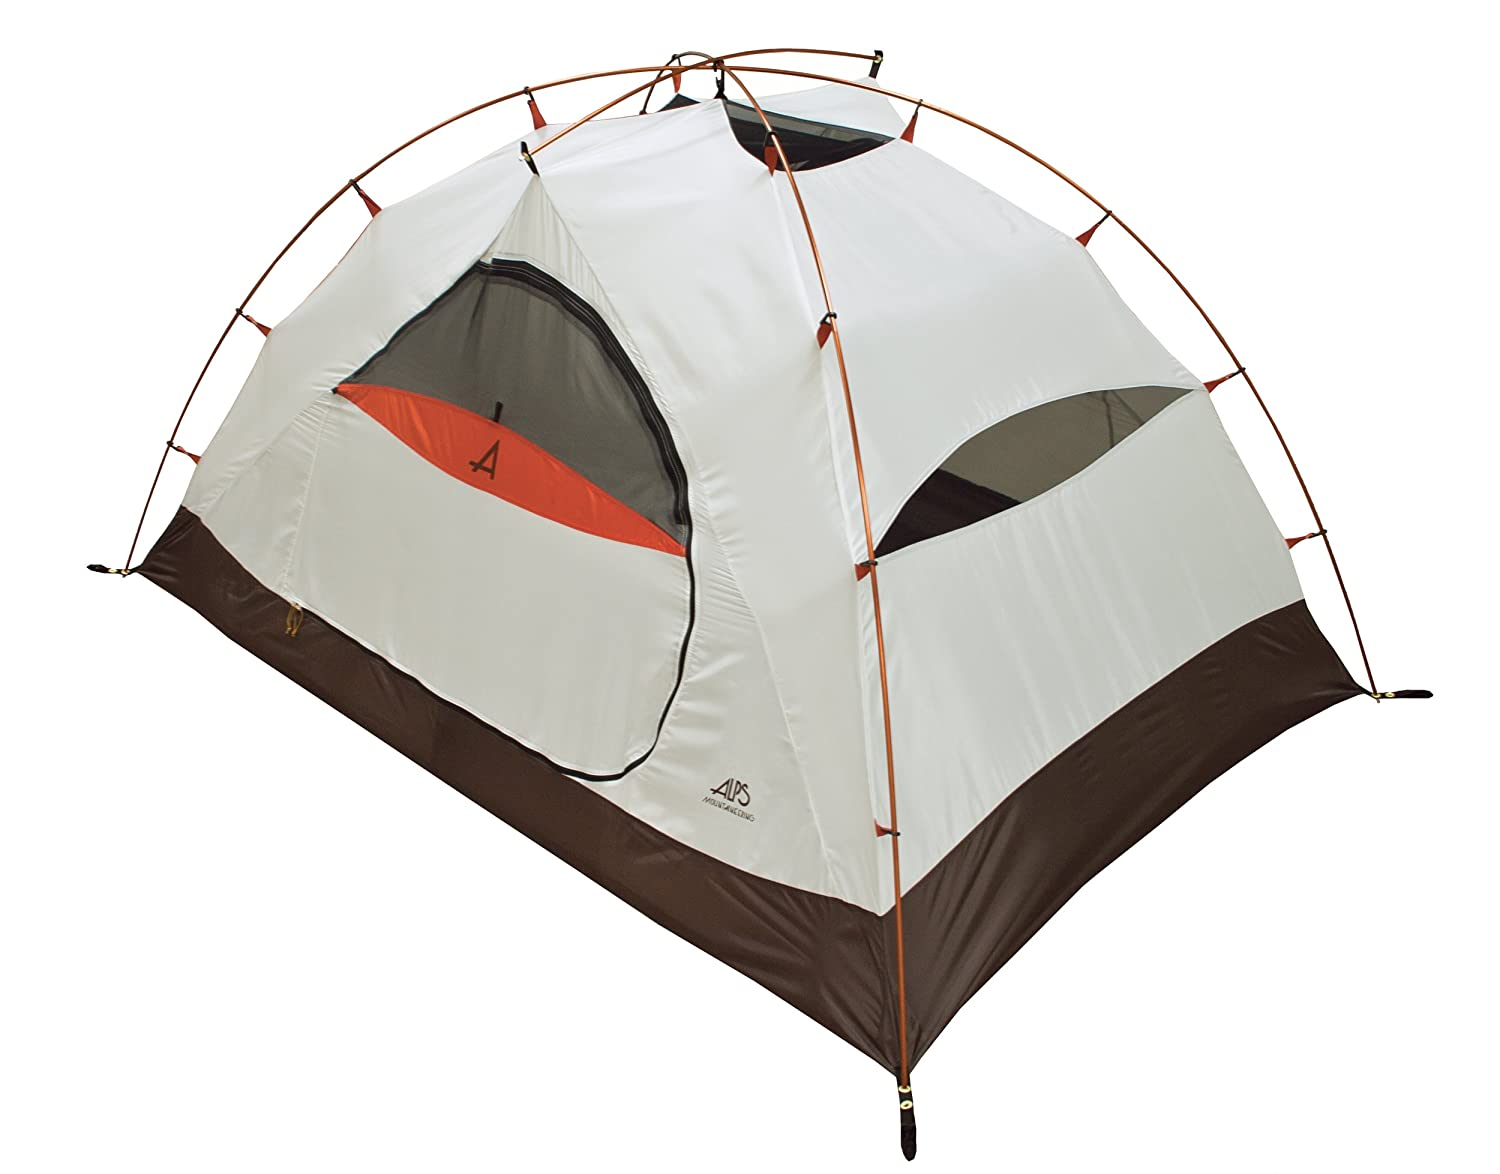 ALPS Mountaineering Morada 4 Tent Review